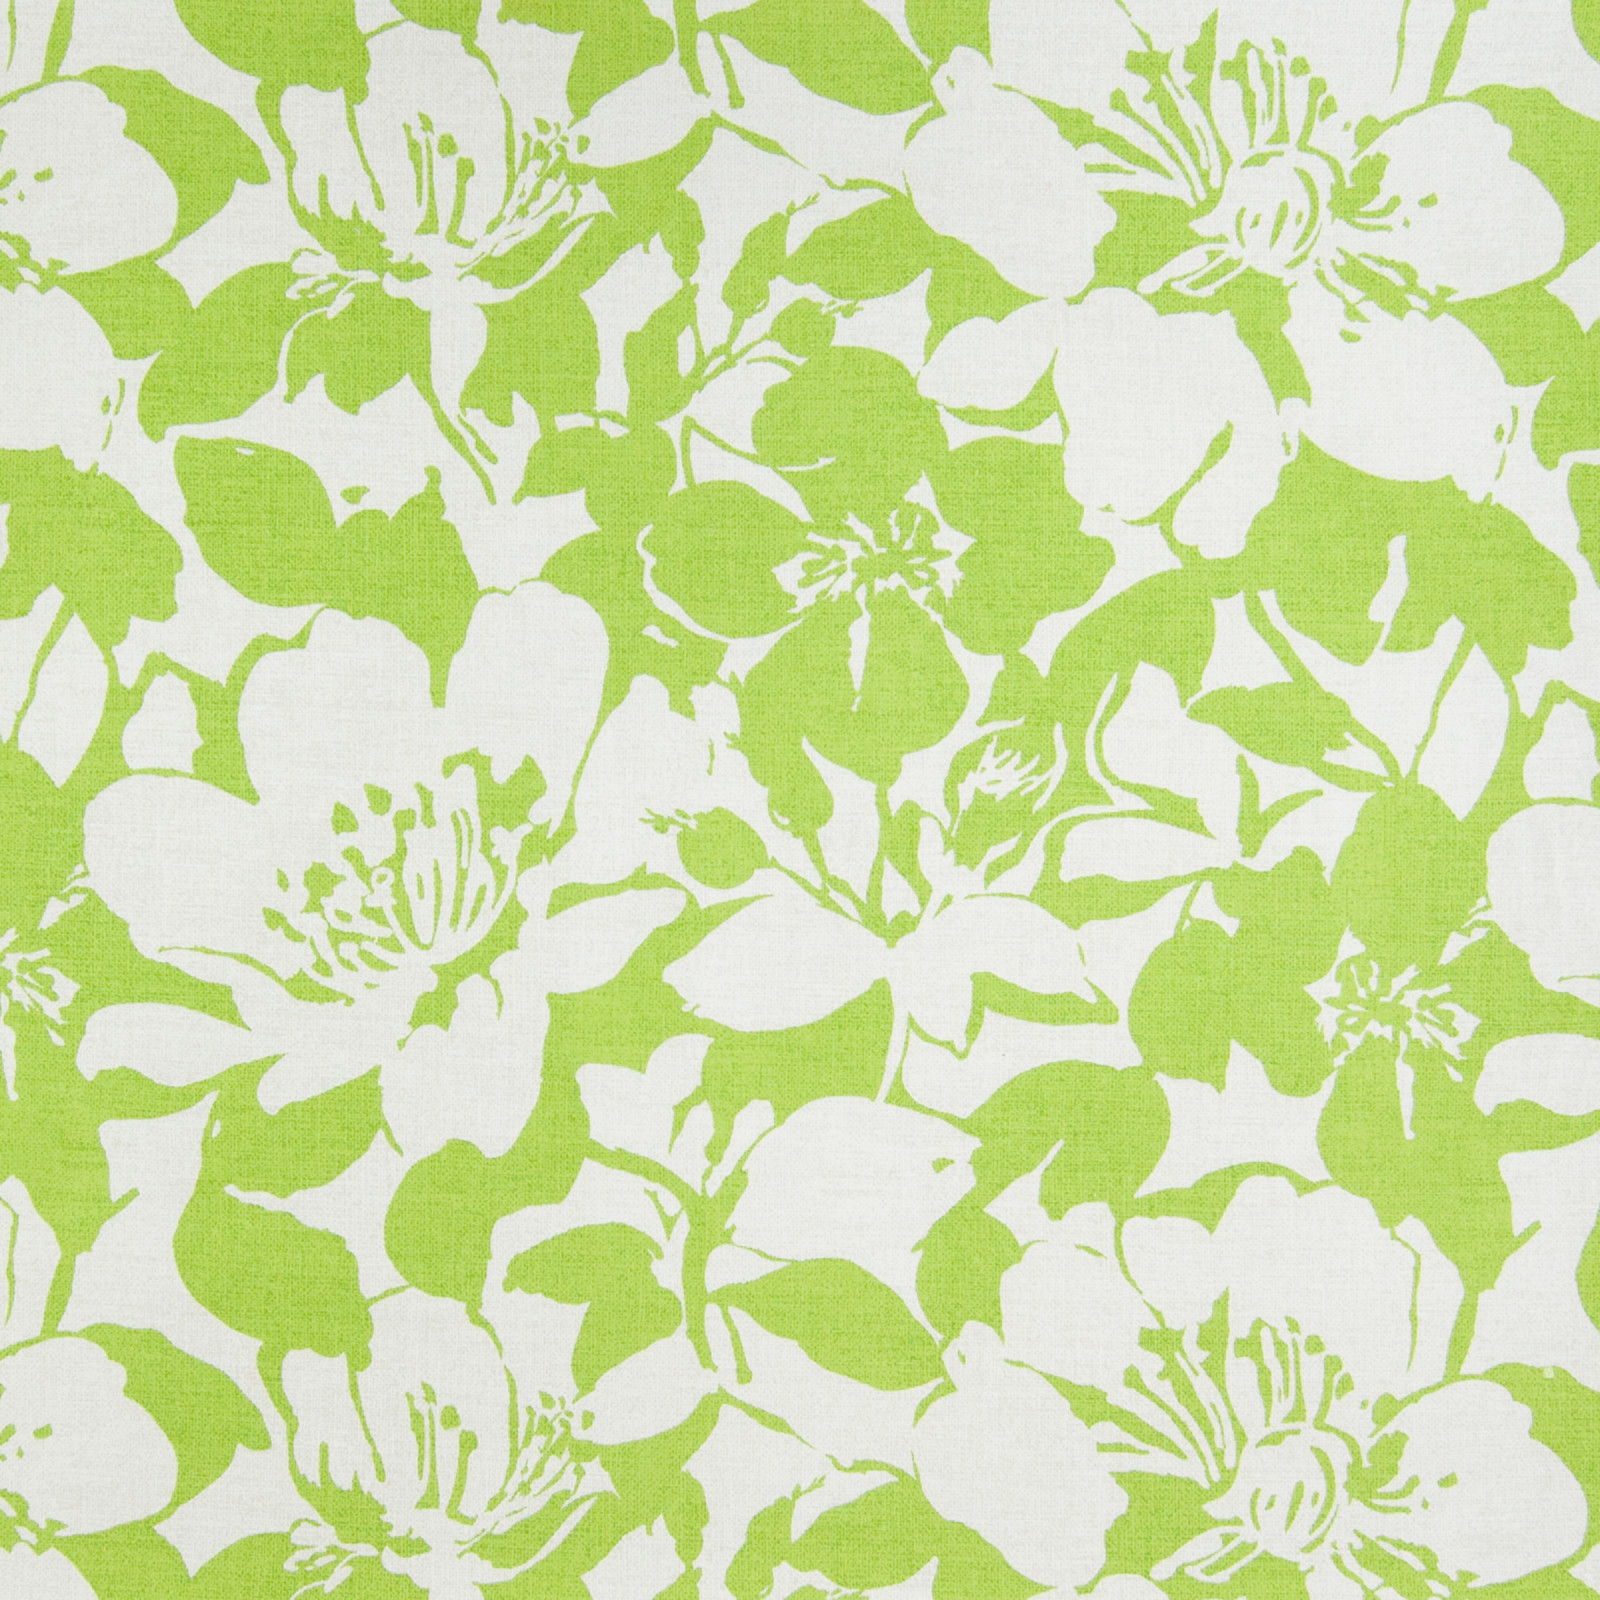 Lime Green Floral Print Upholstery Fabric